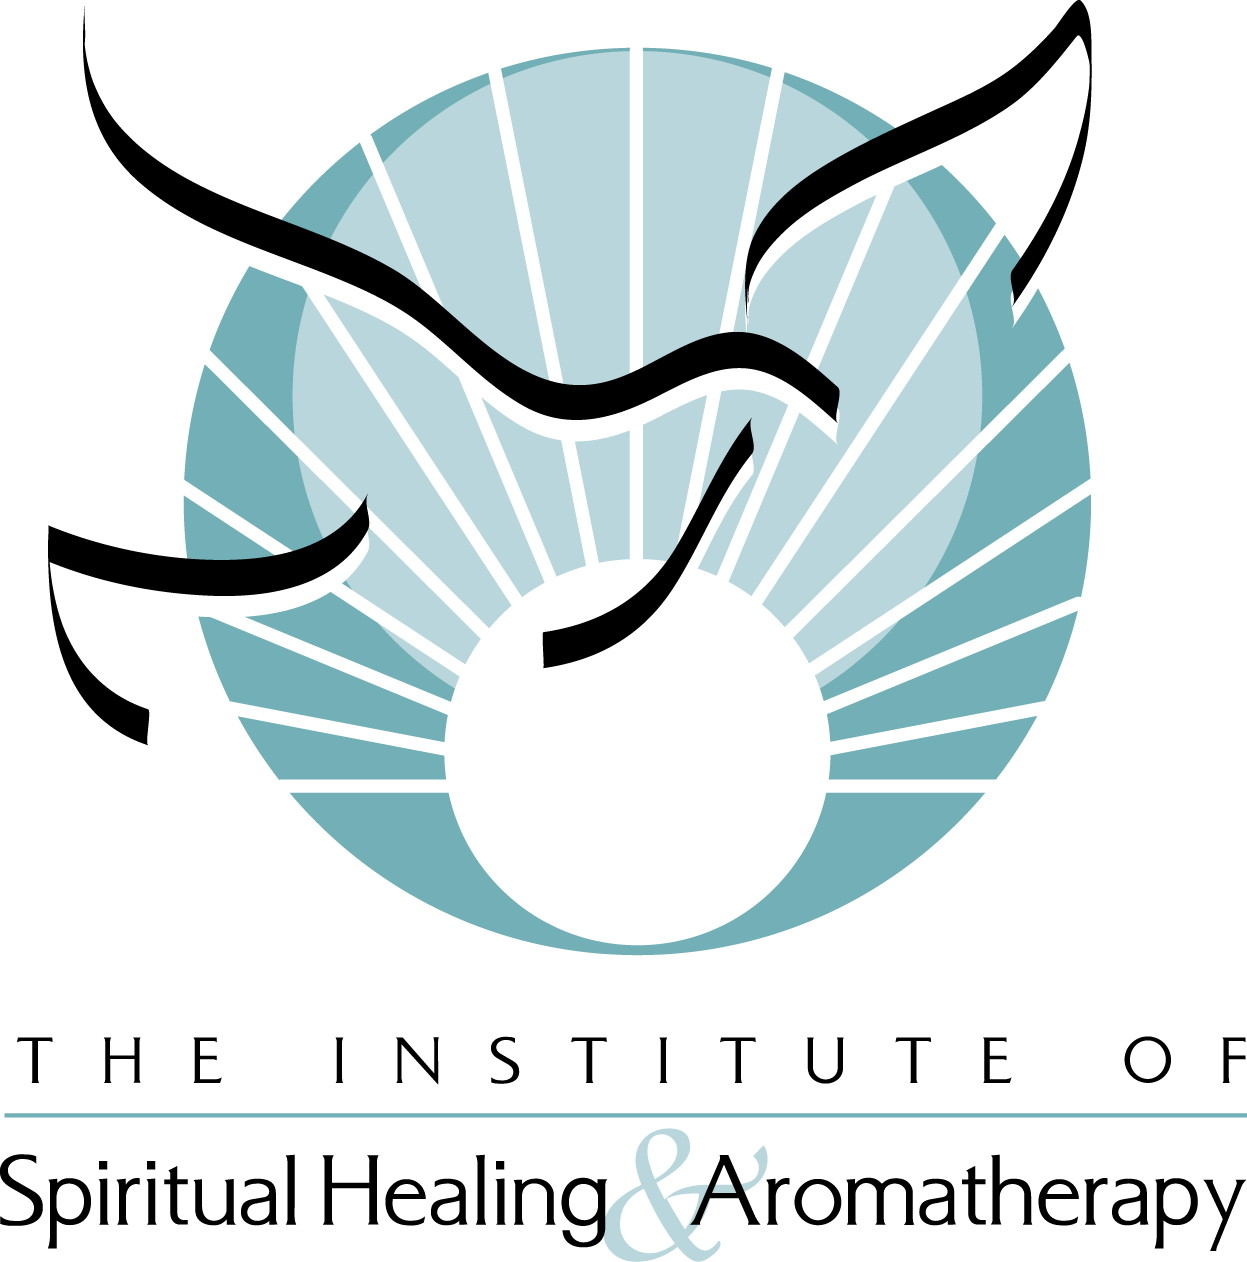 The Institute of Spiritual Healing and Aromatherapy (ISHA)